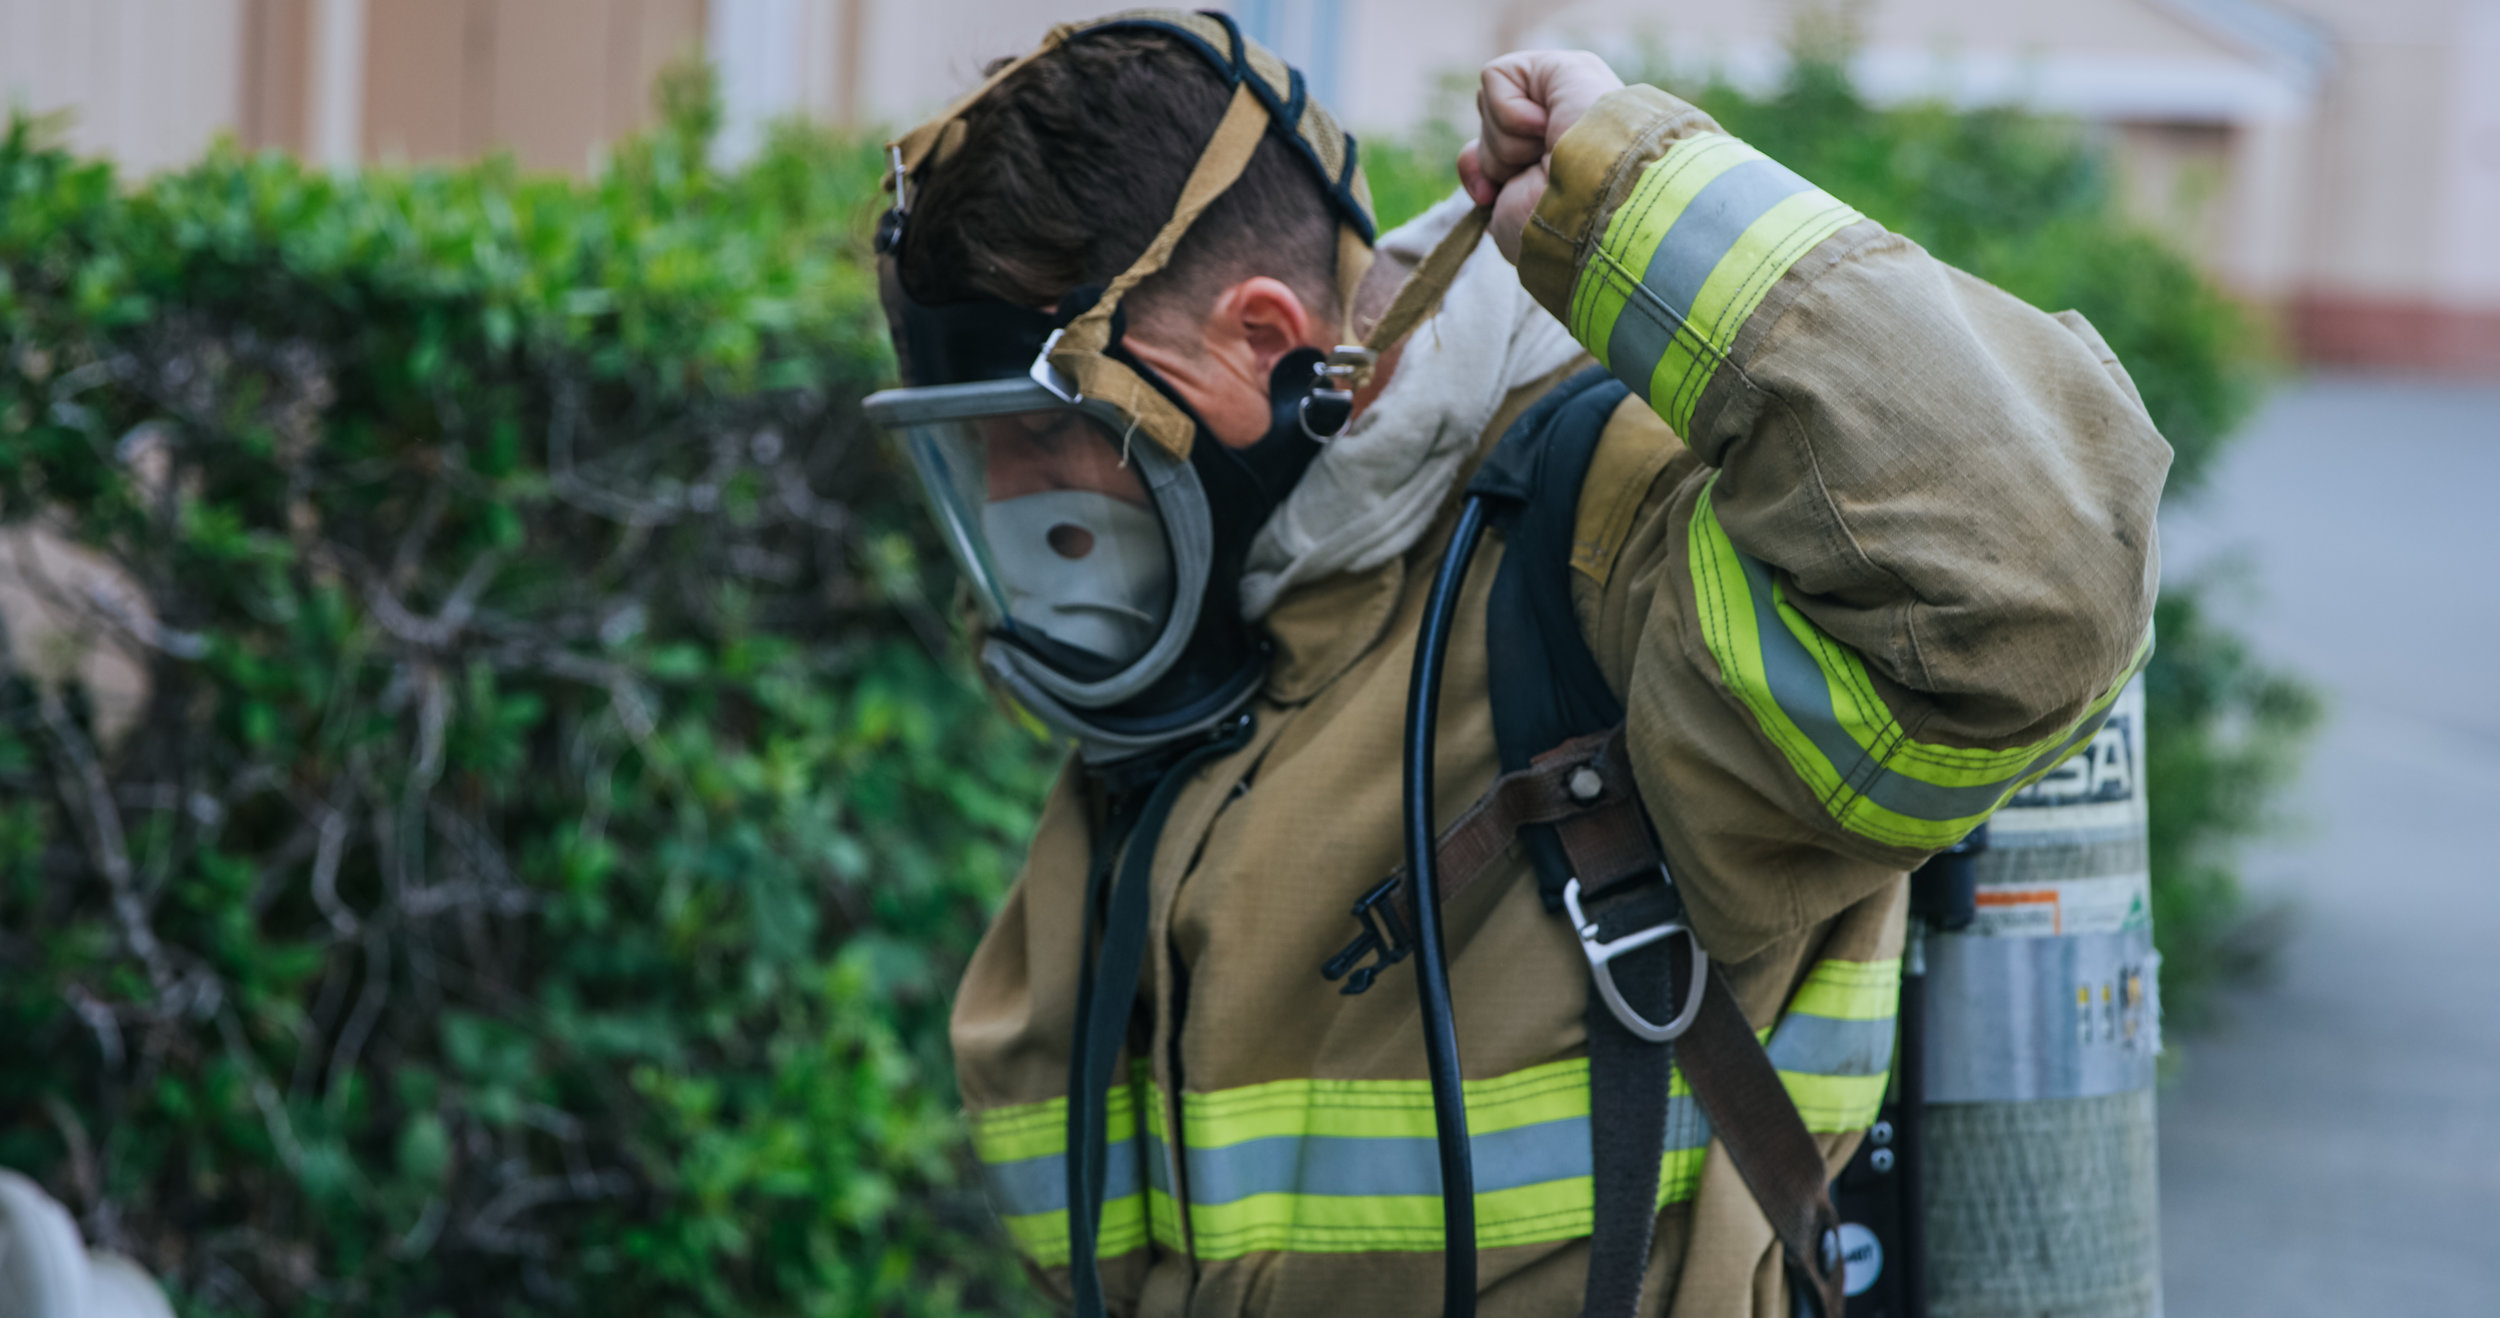 Student securing firefighting mask on face